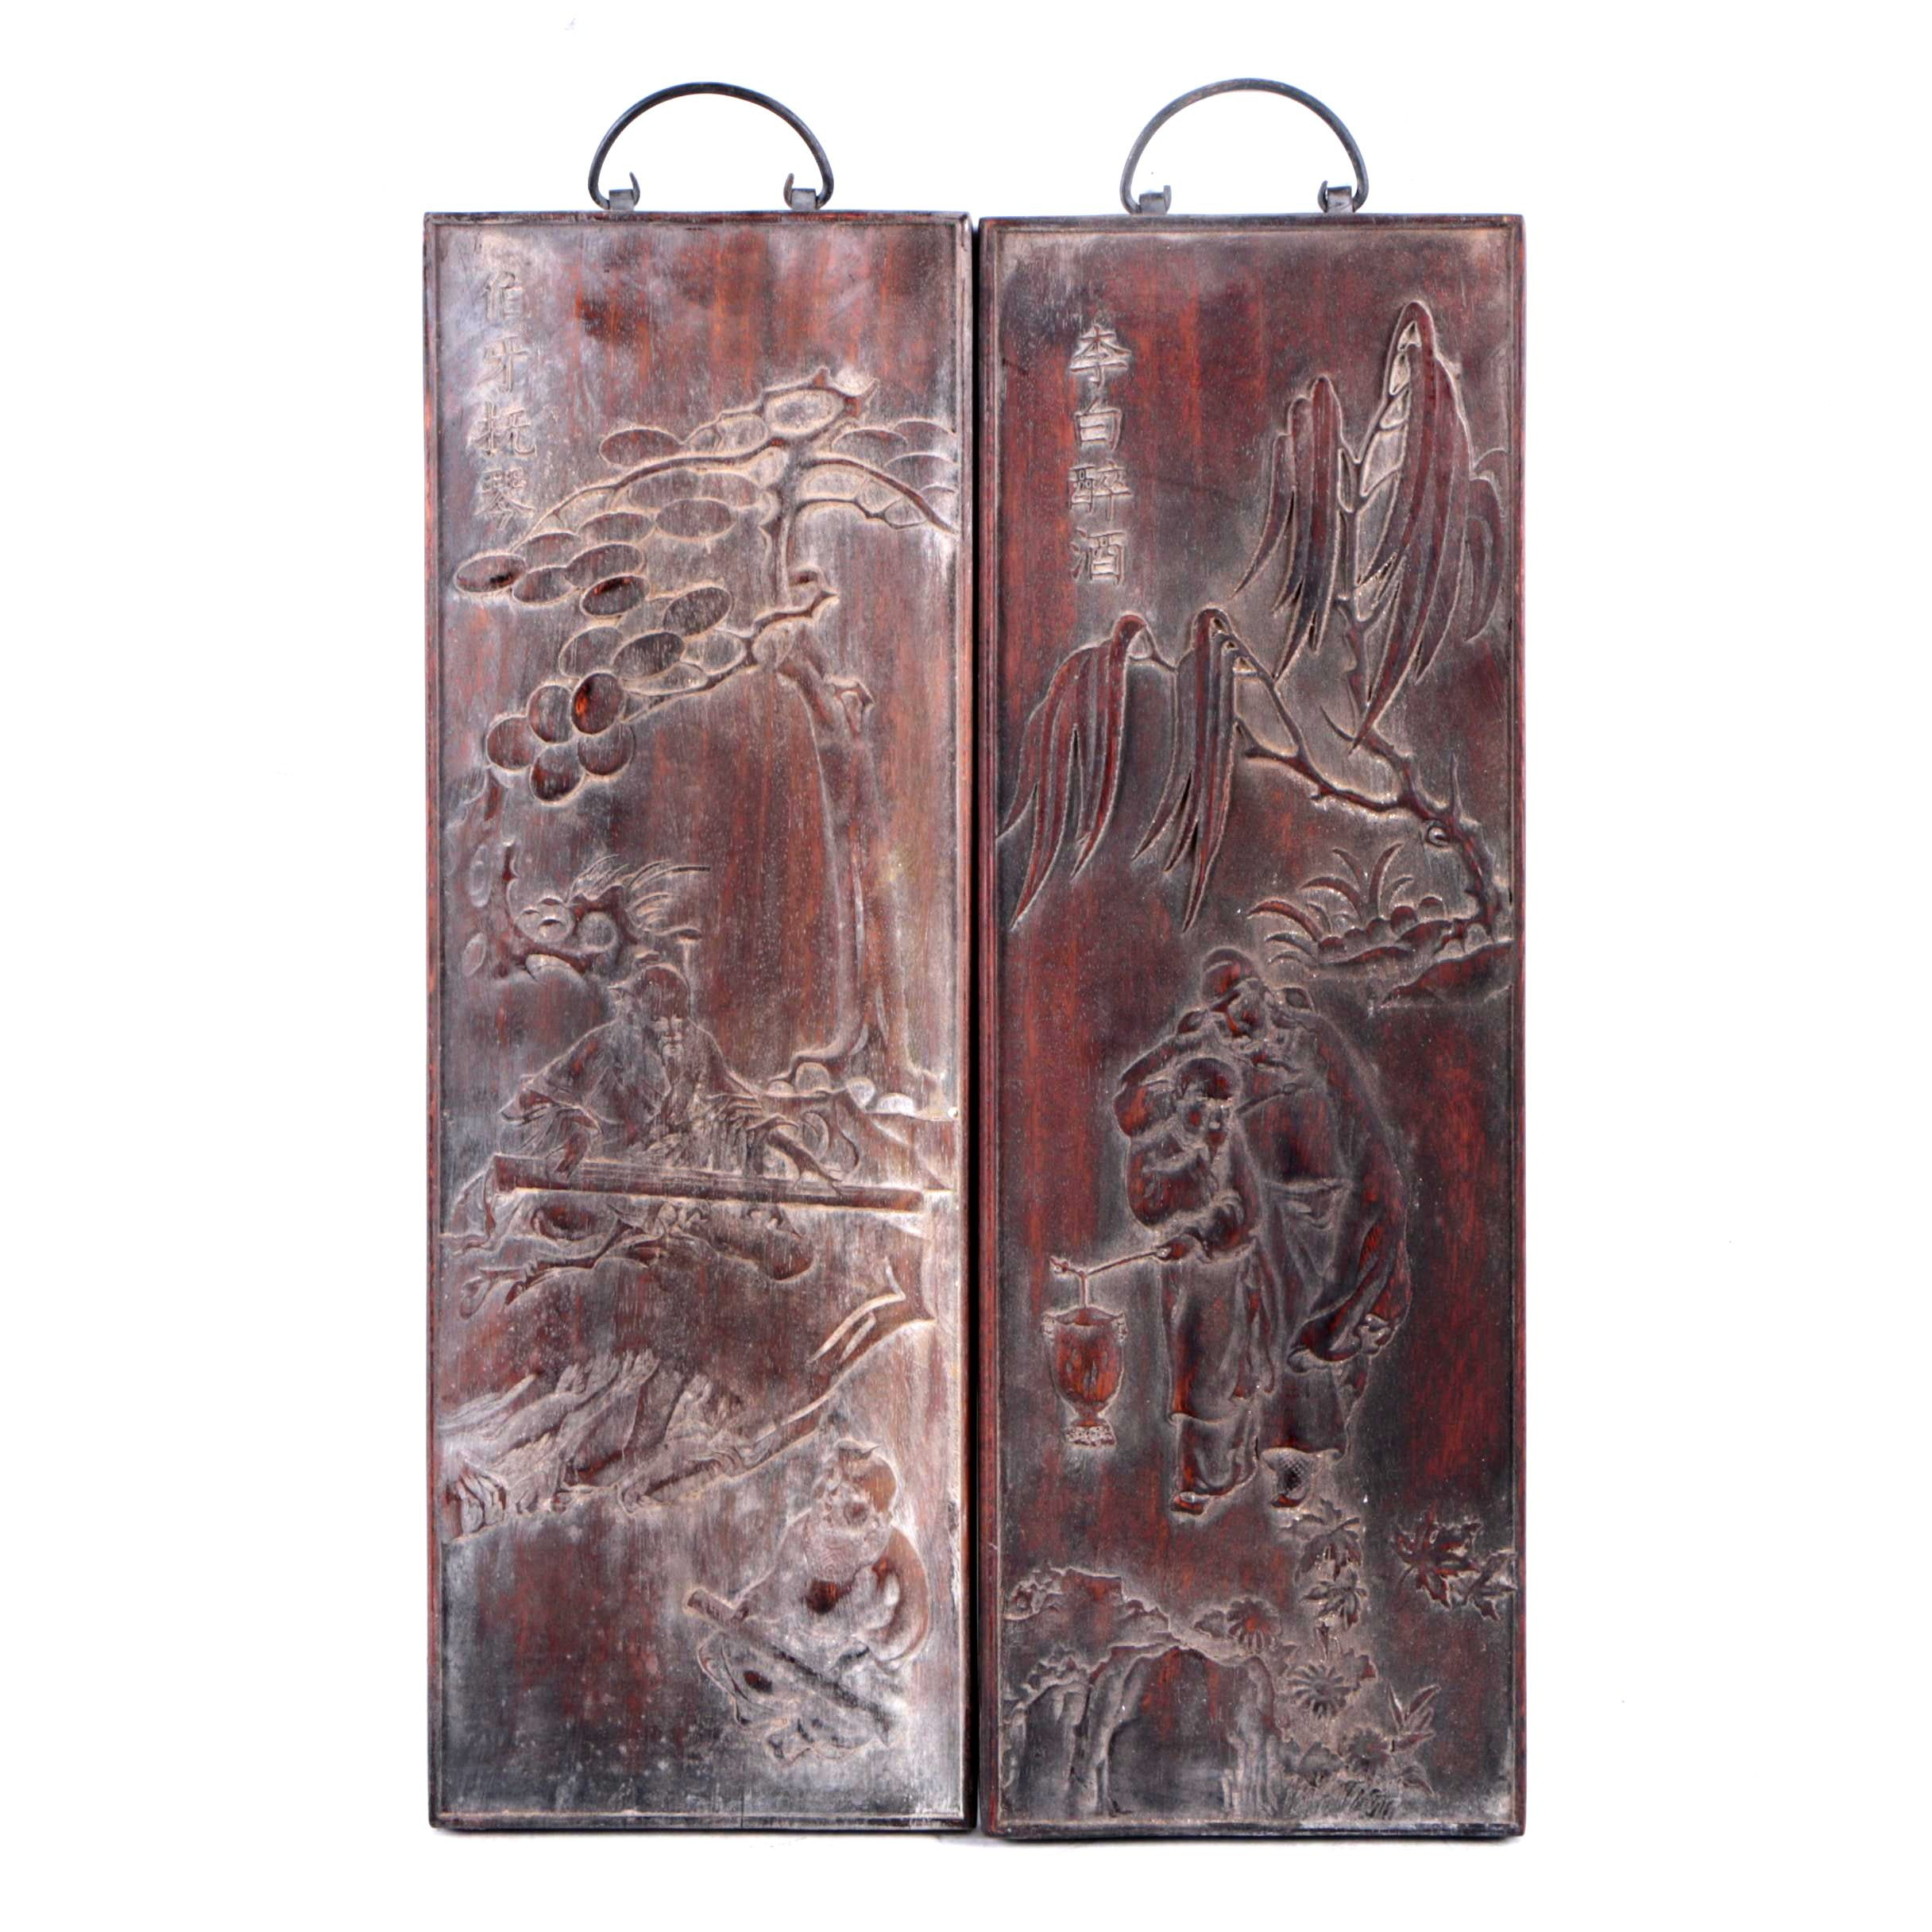 Chinese Low Relief Wood Carvings